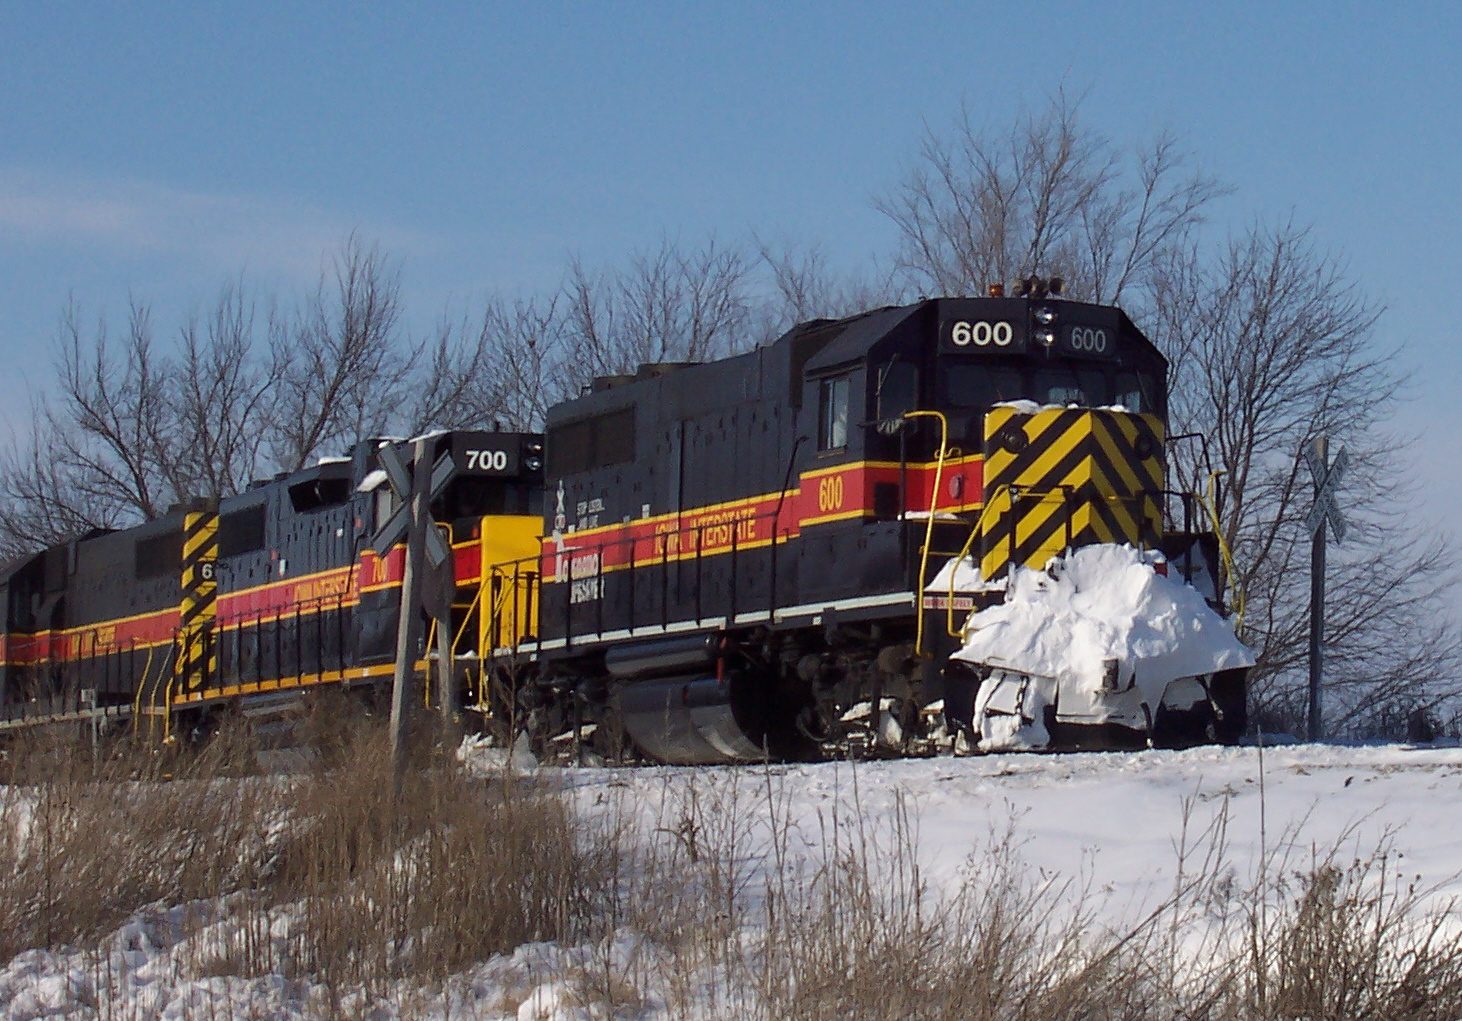 600 leads three engines southeast on the Prairie City Branch on 1/8/2005 to pick up a grain train.  Photo by Ben Hicks.